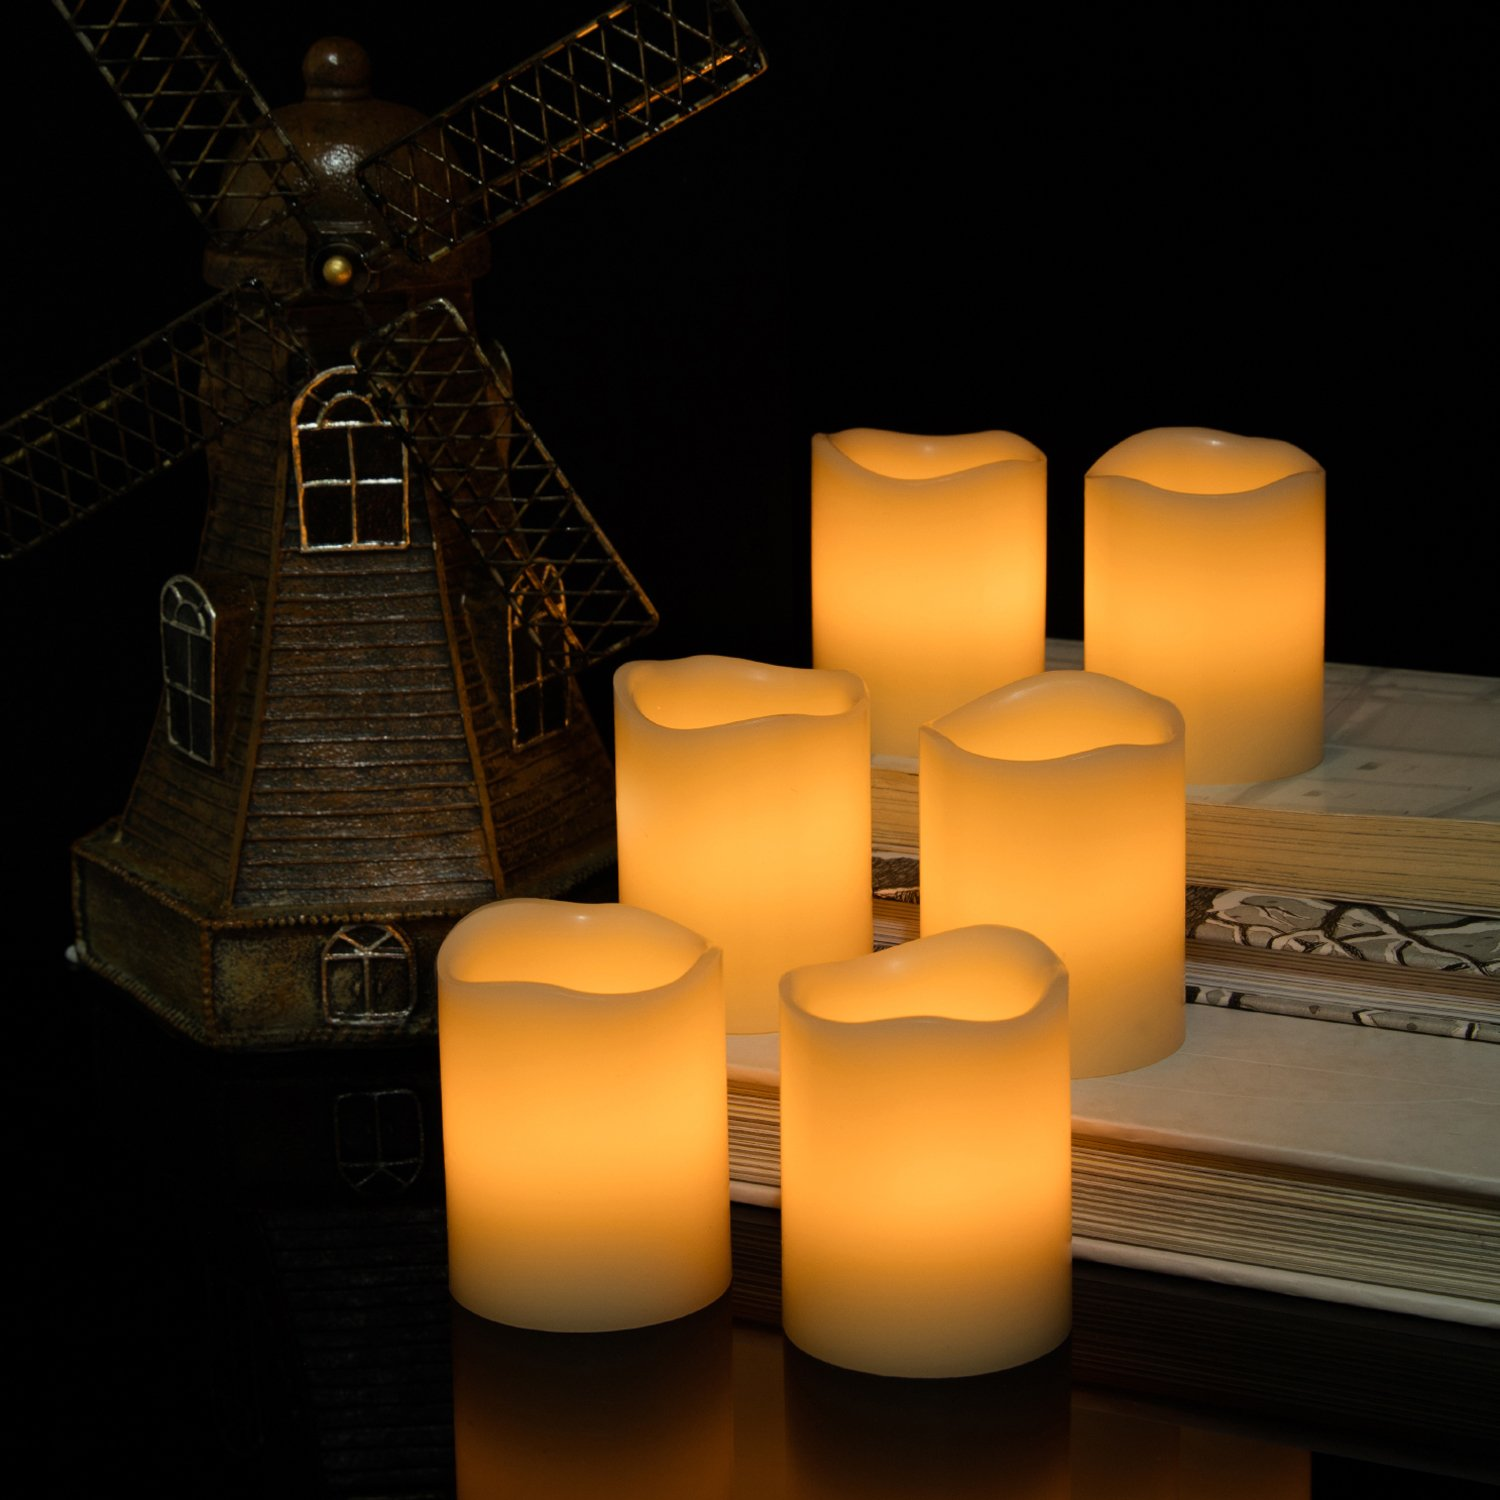 Kohree Flameless Candles Light LED Candles with Built-in Daily-Cycle Timer, Outdoor Battery Operated Led Real Wax Candles Light, Pillar Candle, Warm White Pack of 12 by Kohree (Image #6)